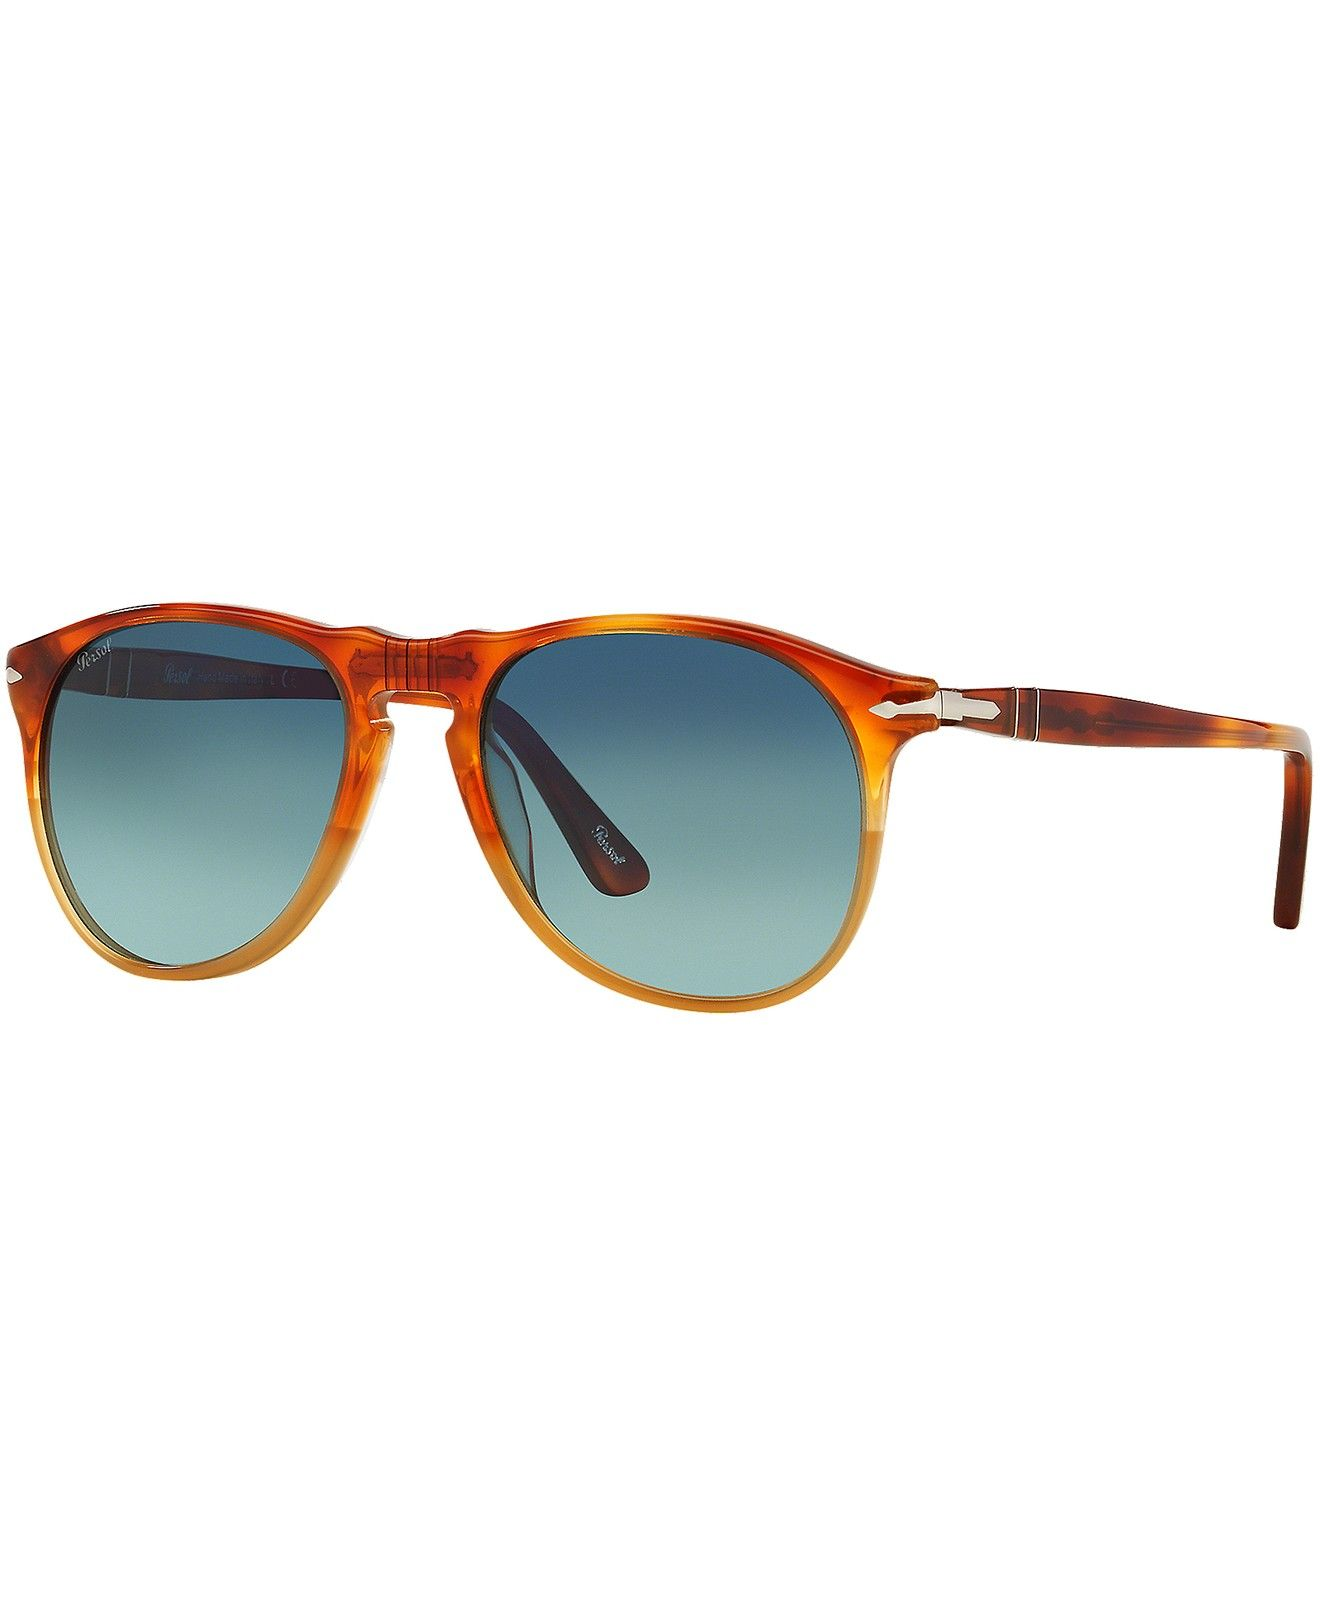 Sun Hut Sunglasses Actress: Persol Sunglasses, PERSOL PO9649S (55)